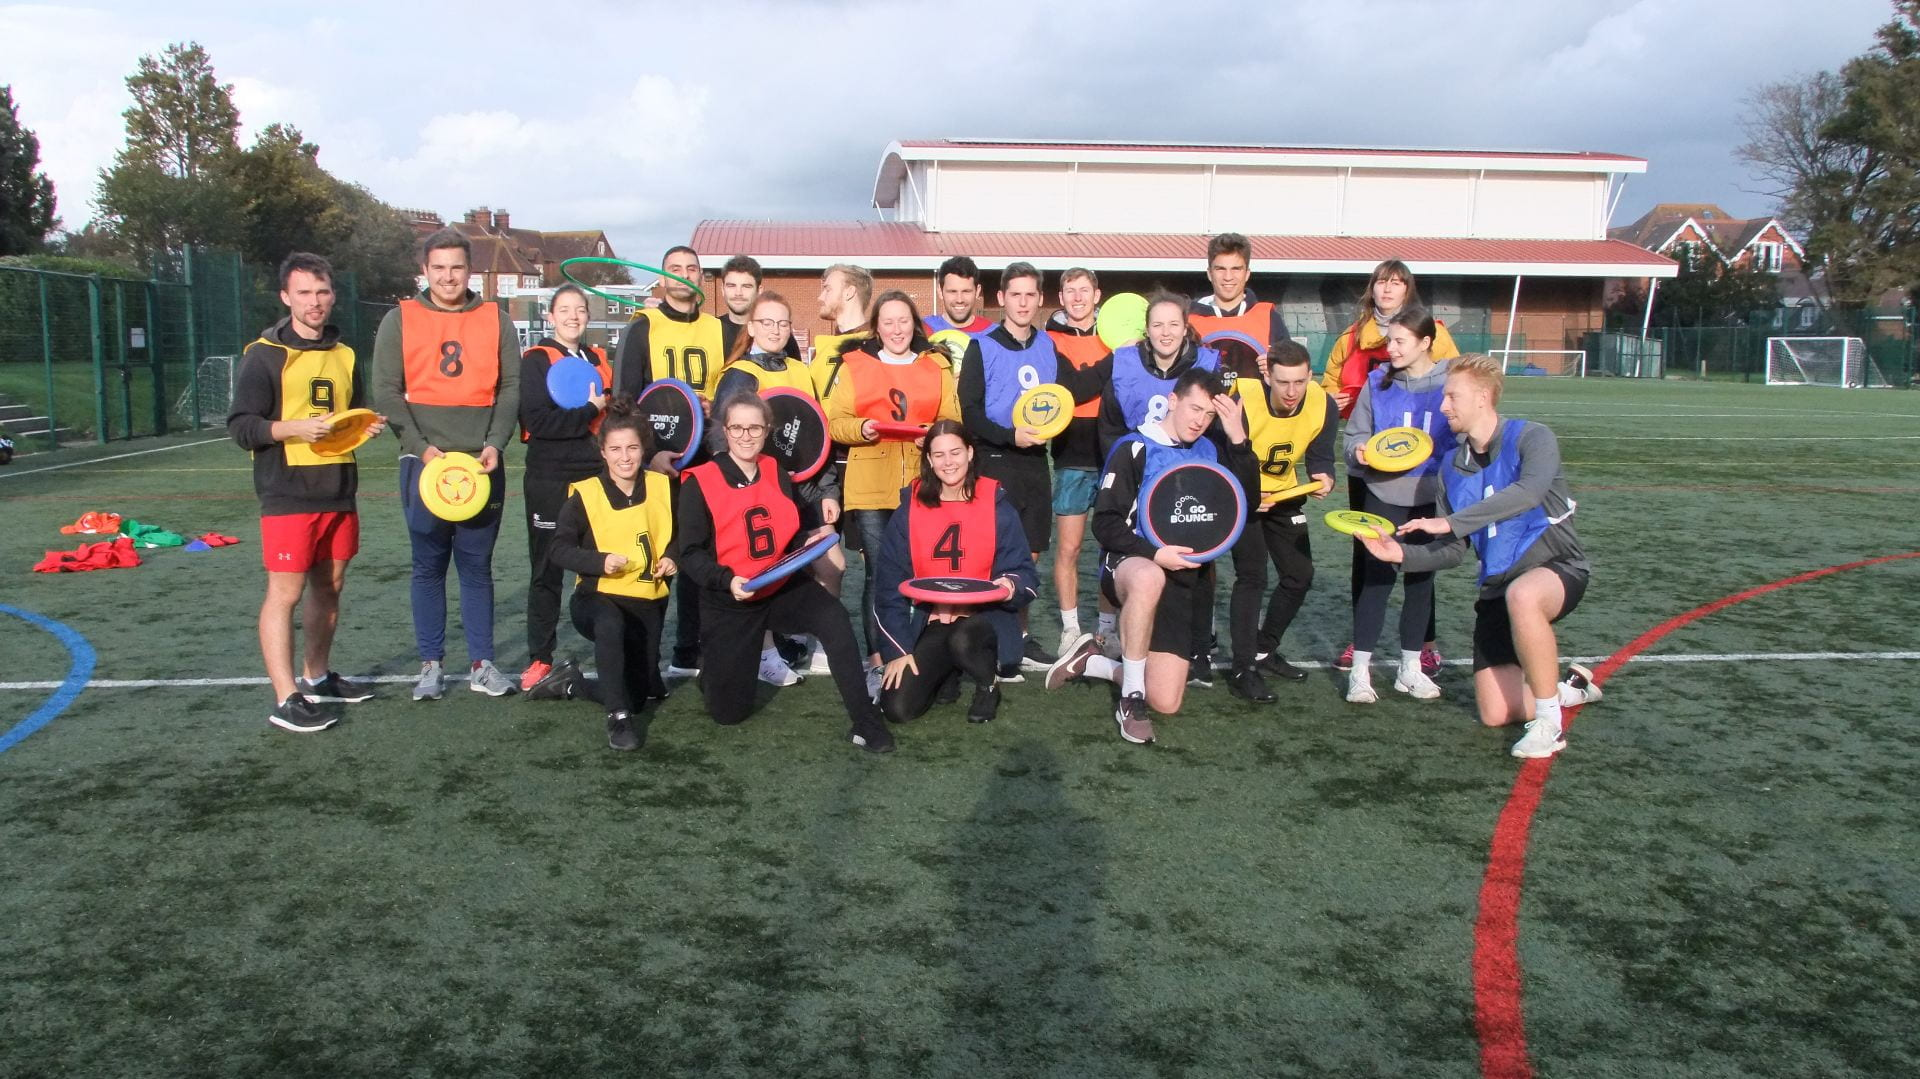 the group with their frisbees